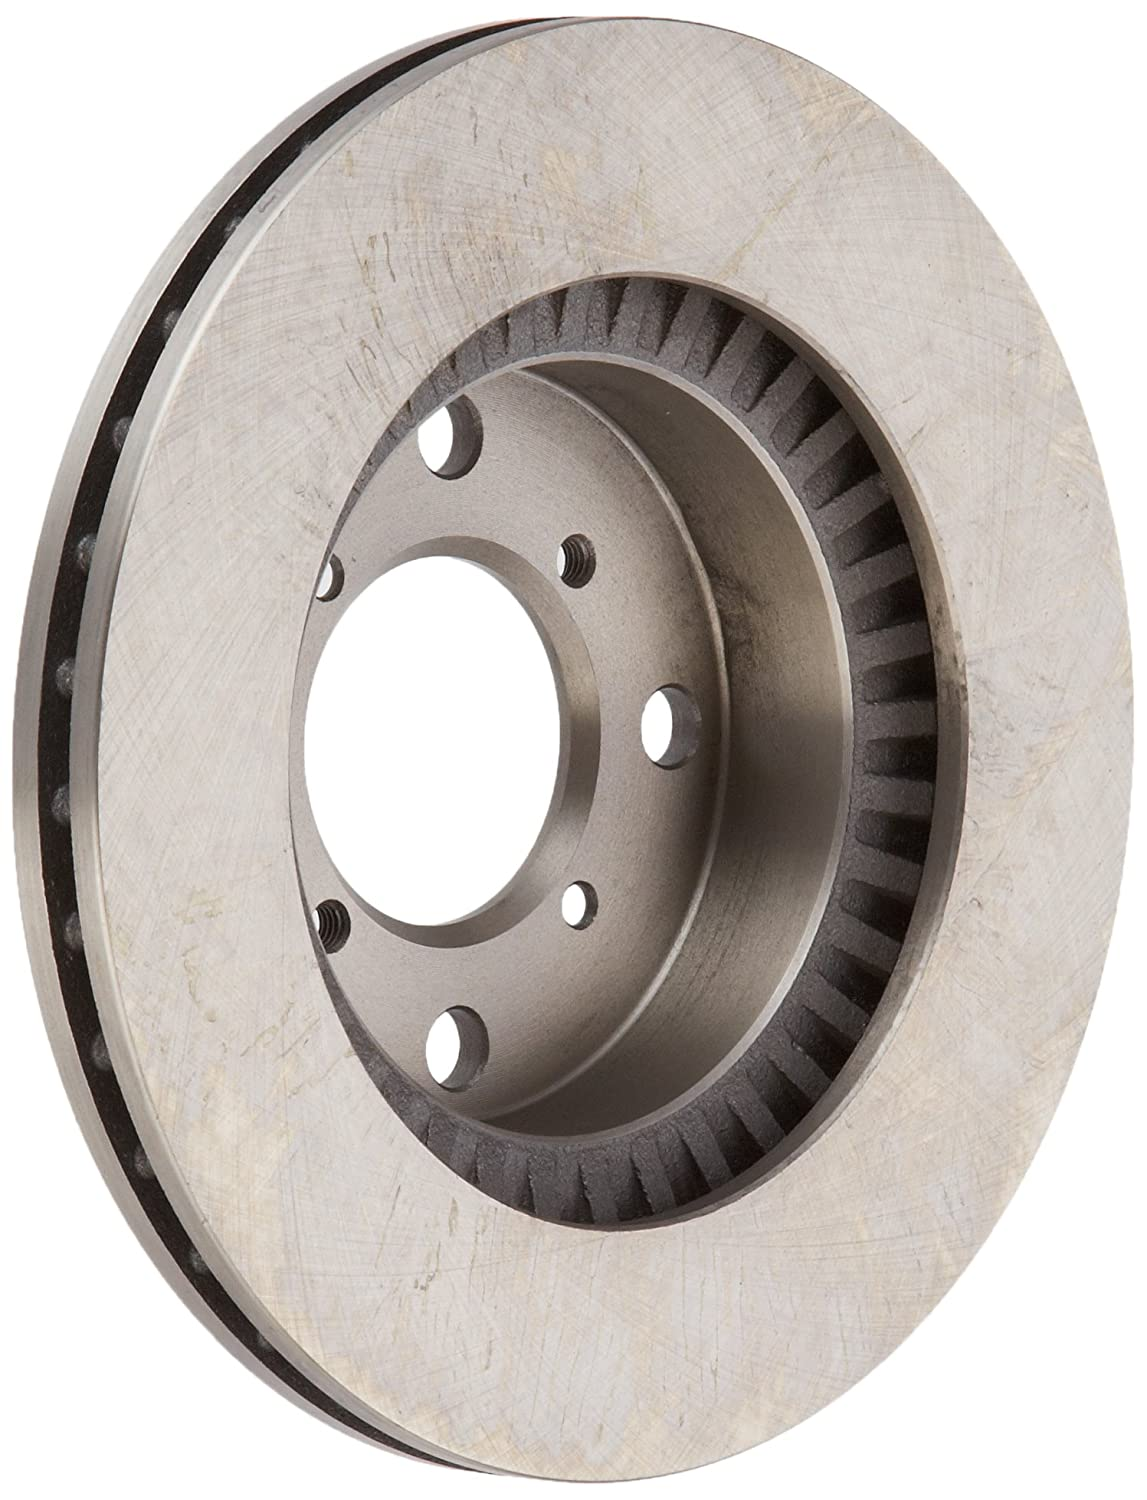 ACDelco 18A830A Advantage Non-Coated Front Disc Brake Rotor